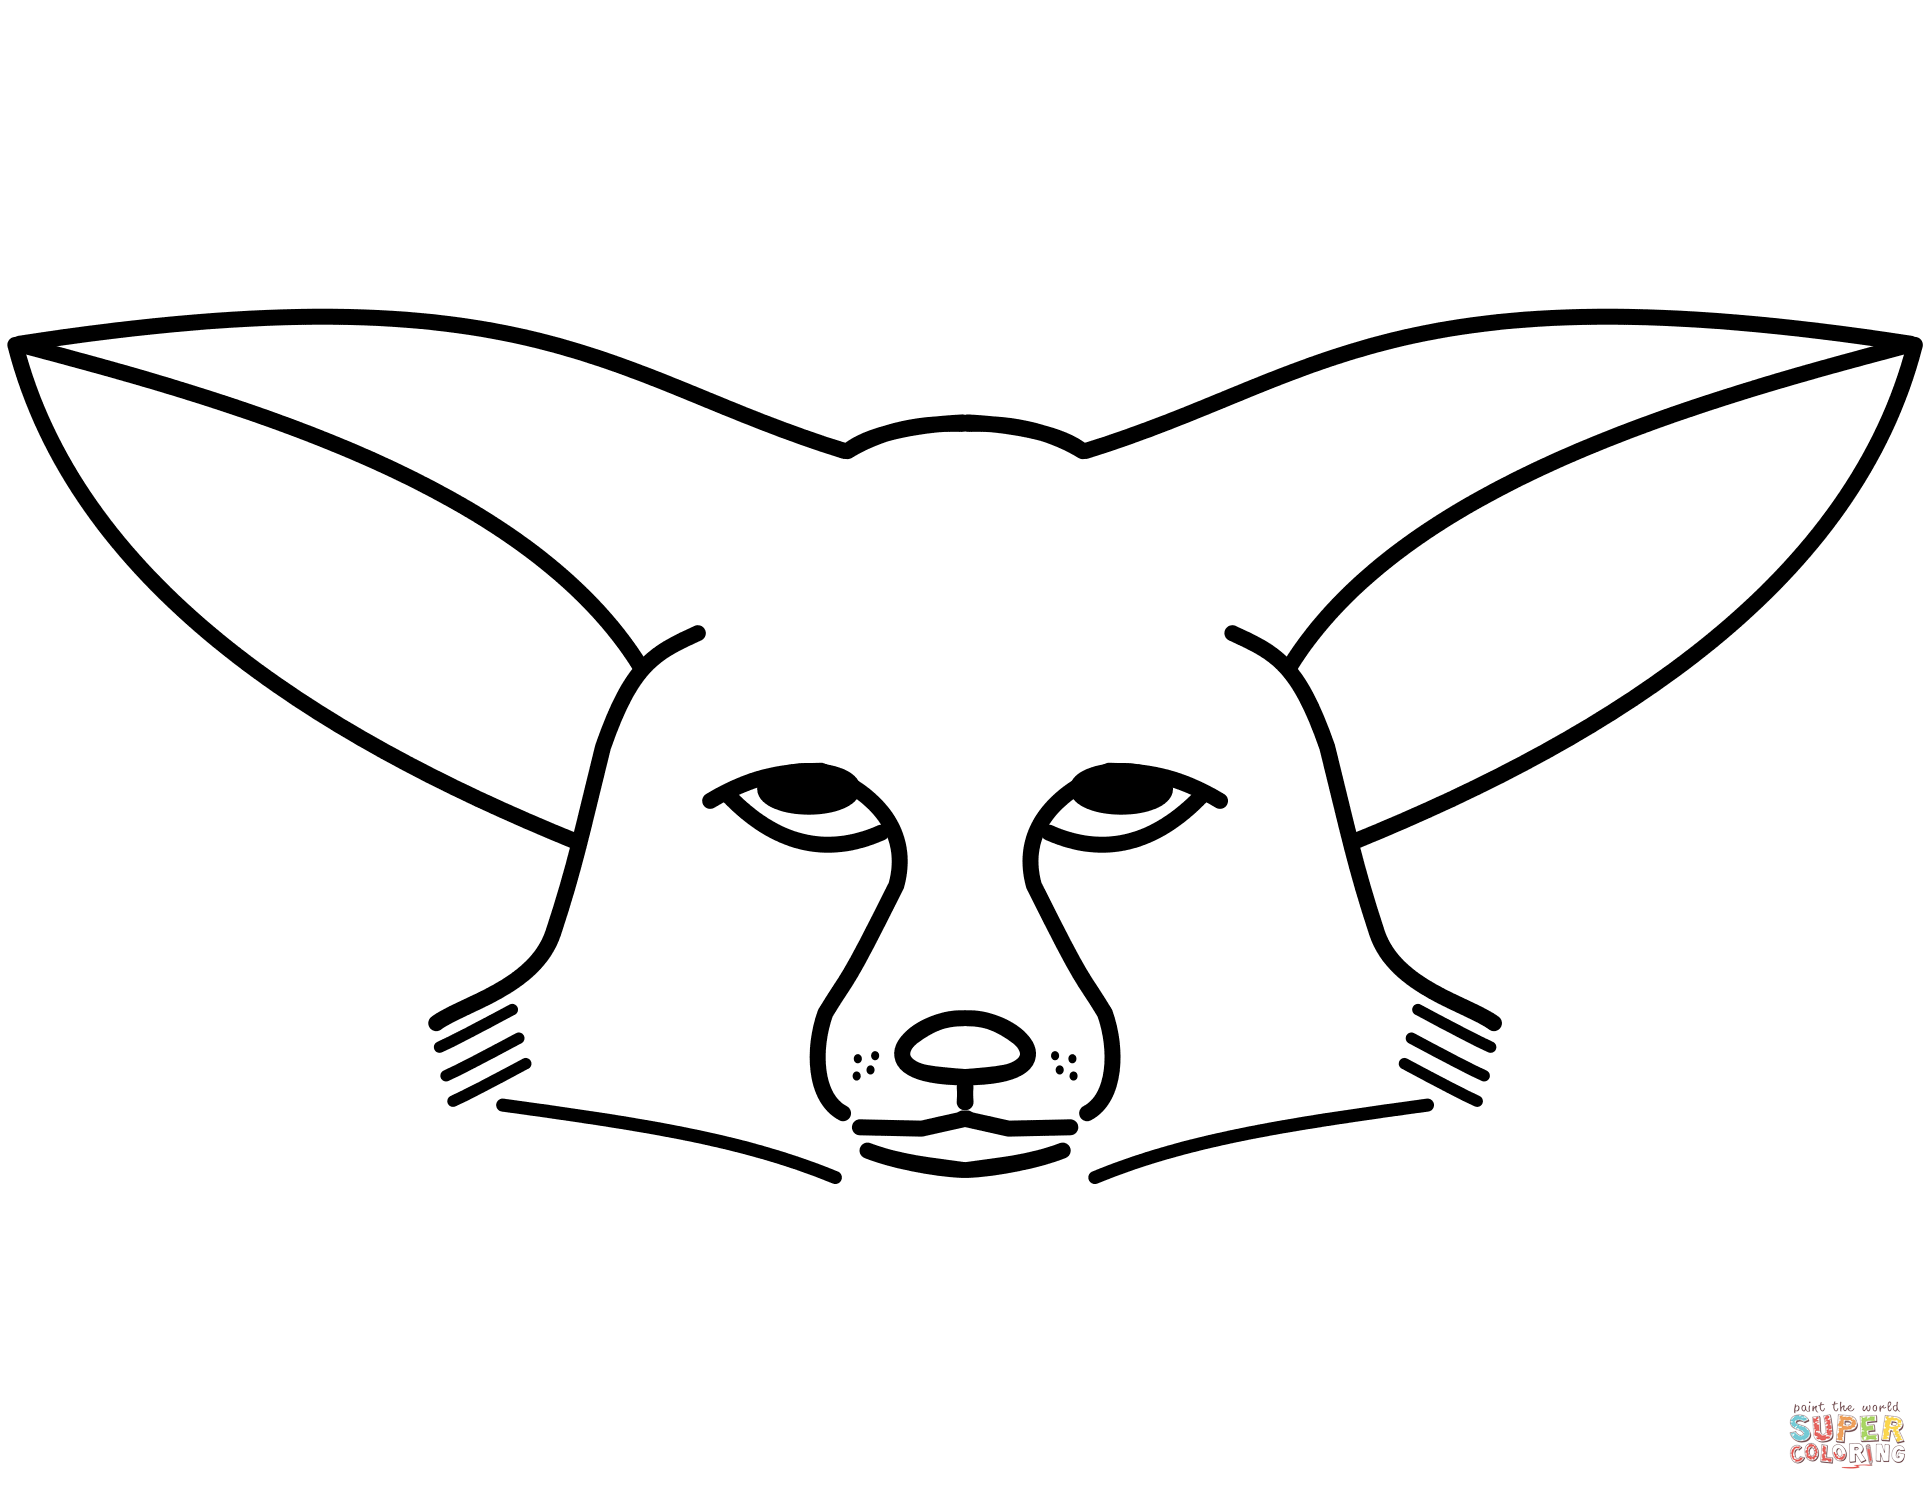 fox face coloring page print coloring image reese fox coloring page fox page face coloring fox